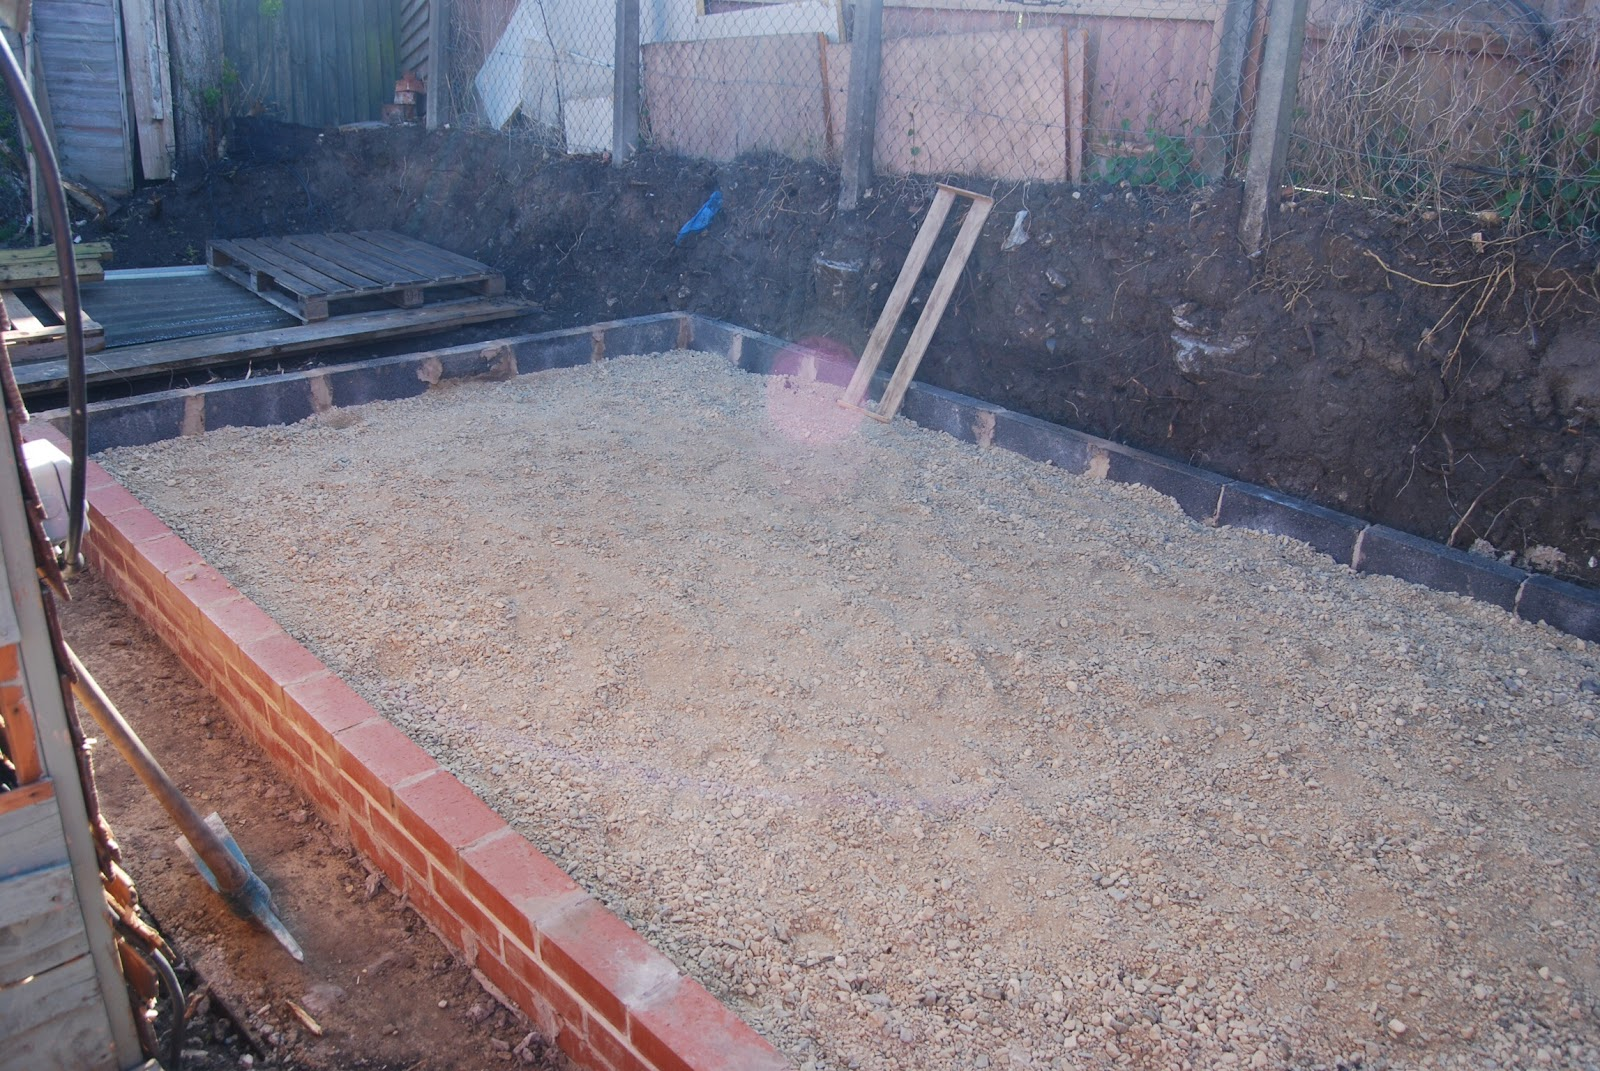 New block shed self build part 3 floor block laying for Concrete block floor